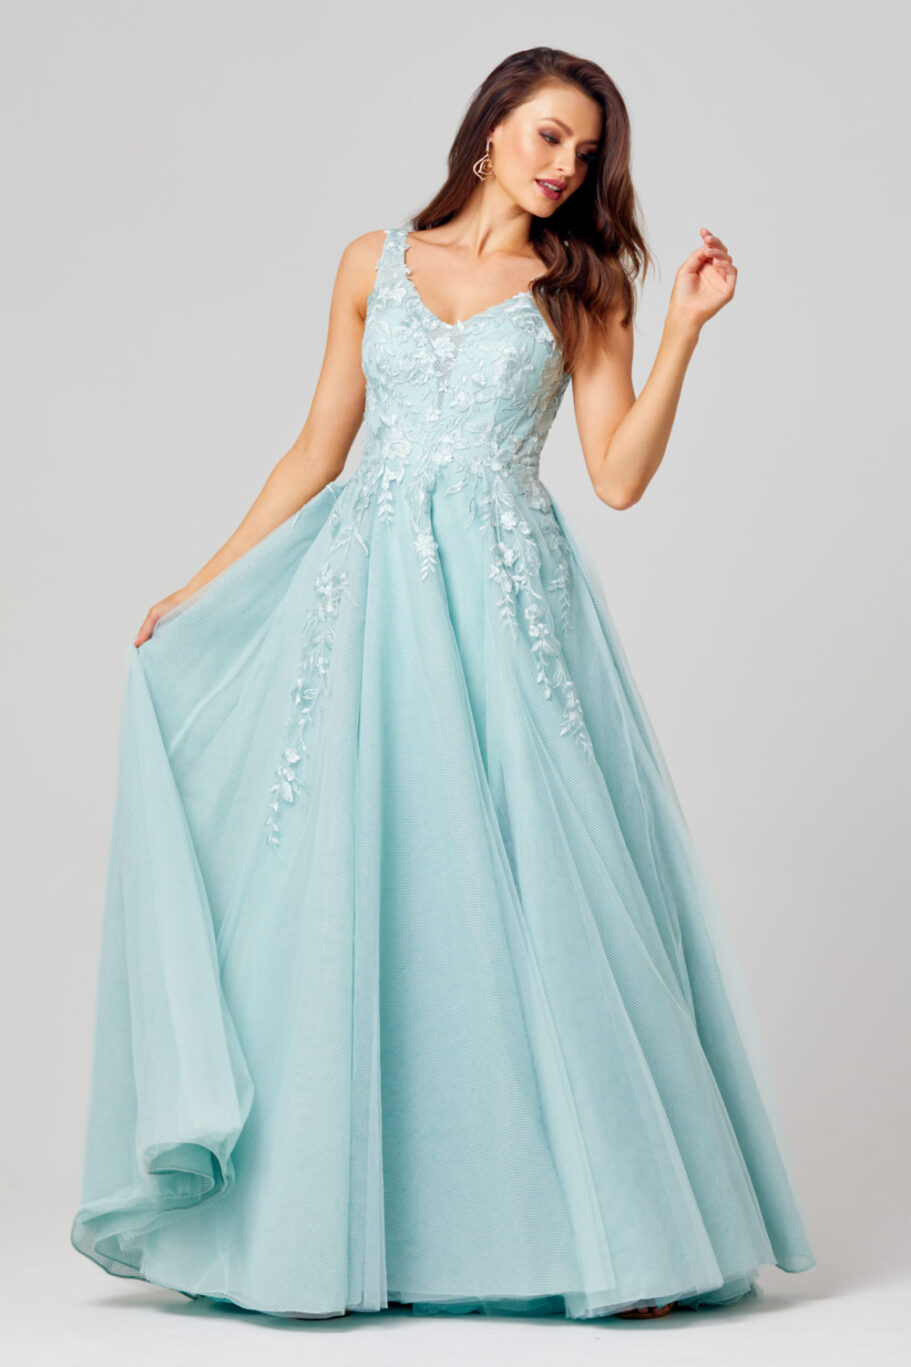 Cindy Sweetheart Formal Gown - TC274